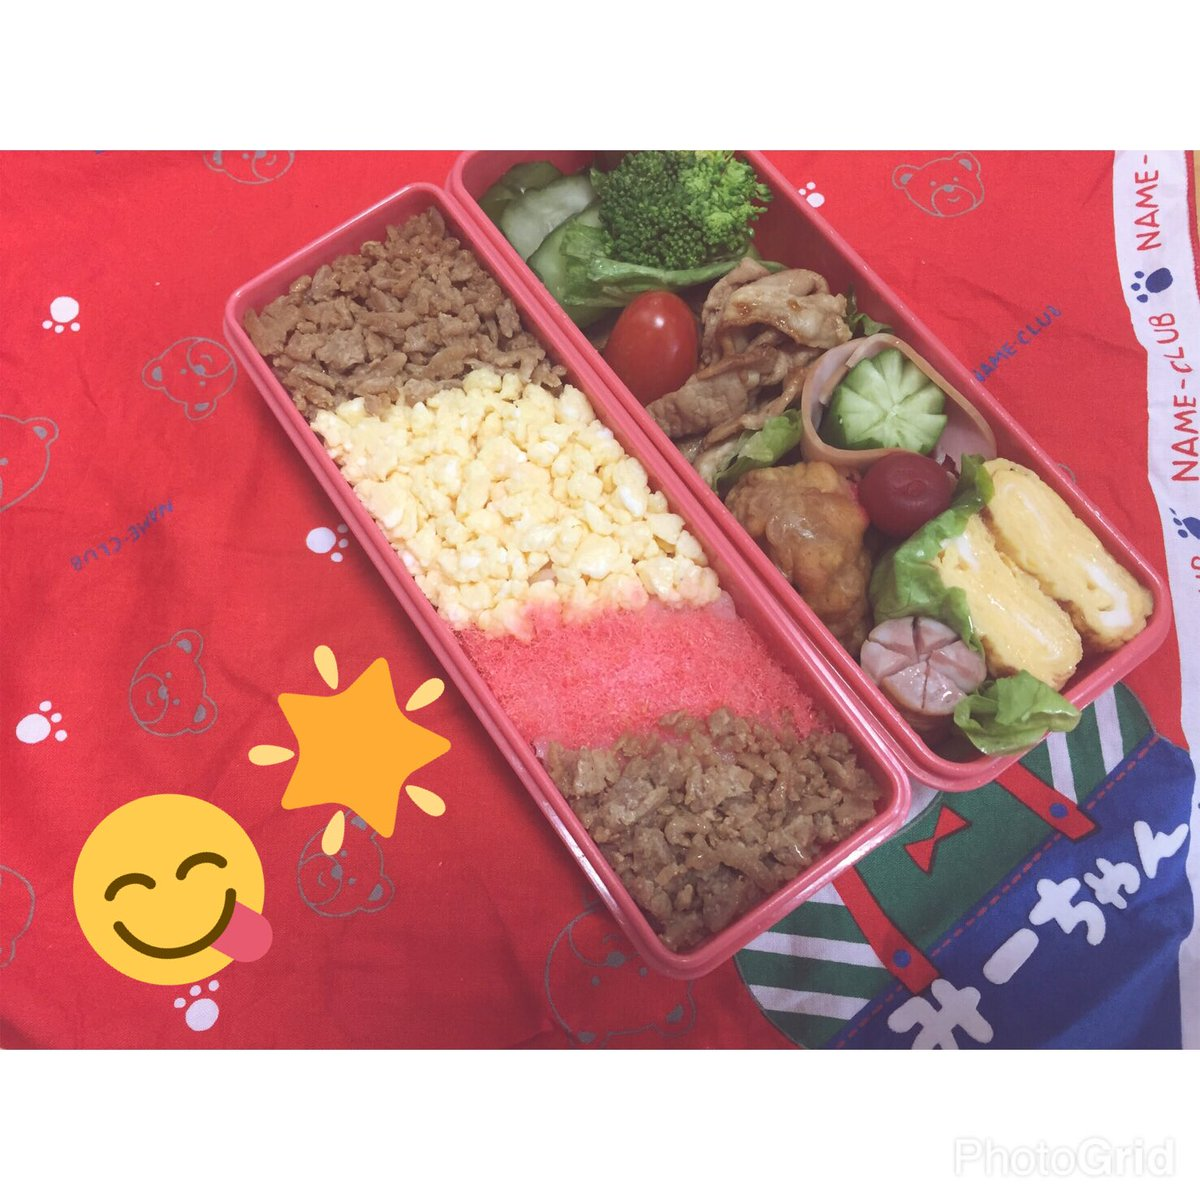 last-boxed-lunch-4